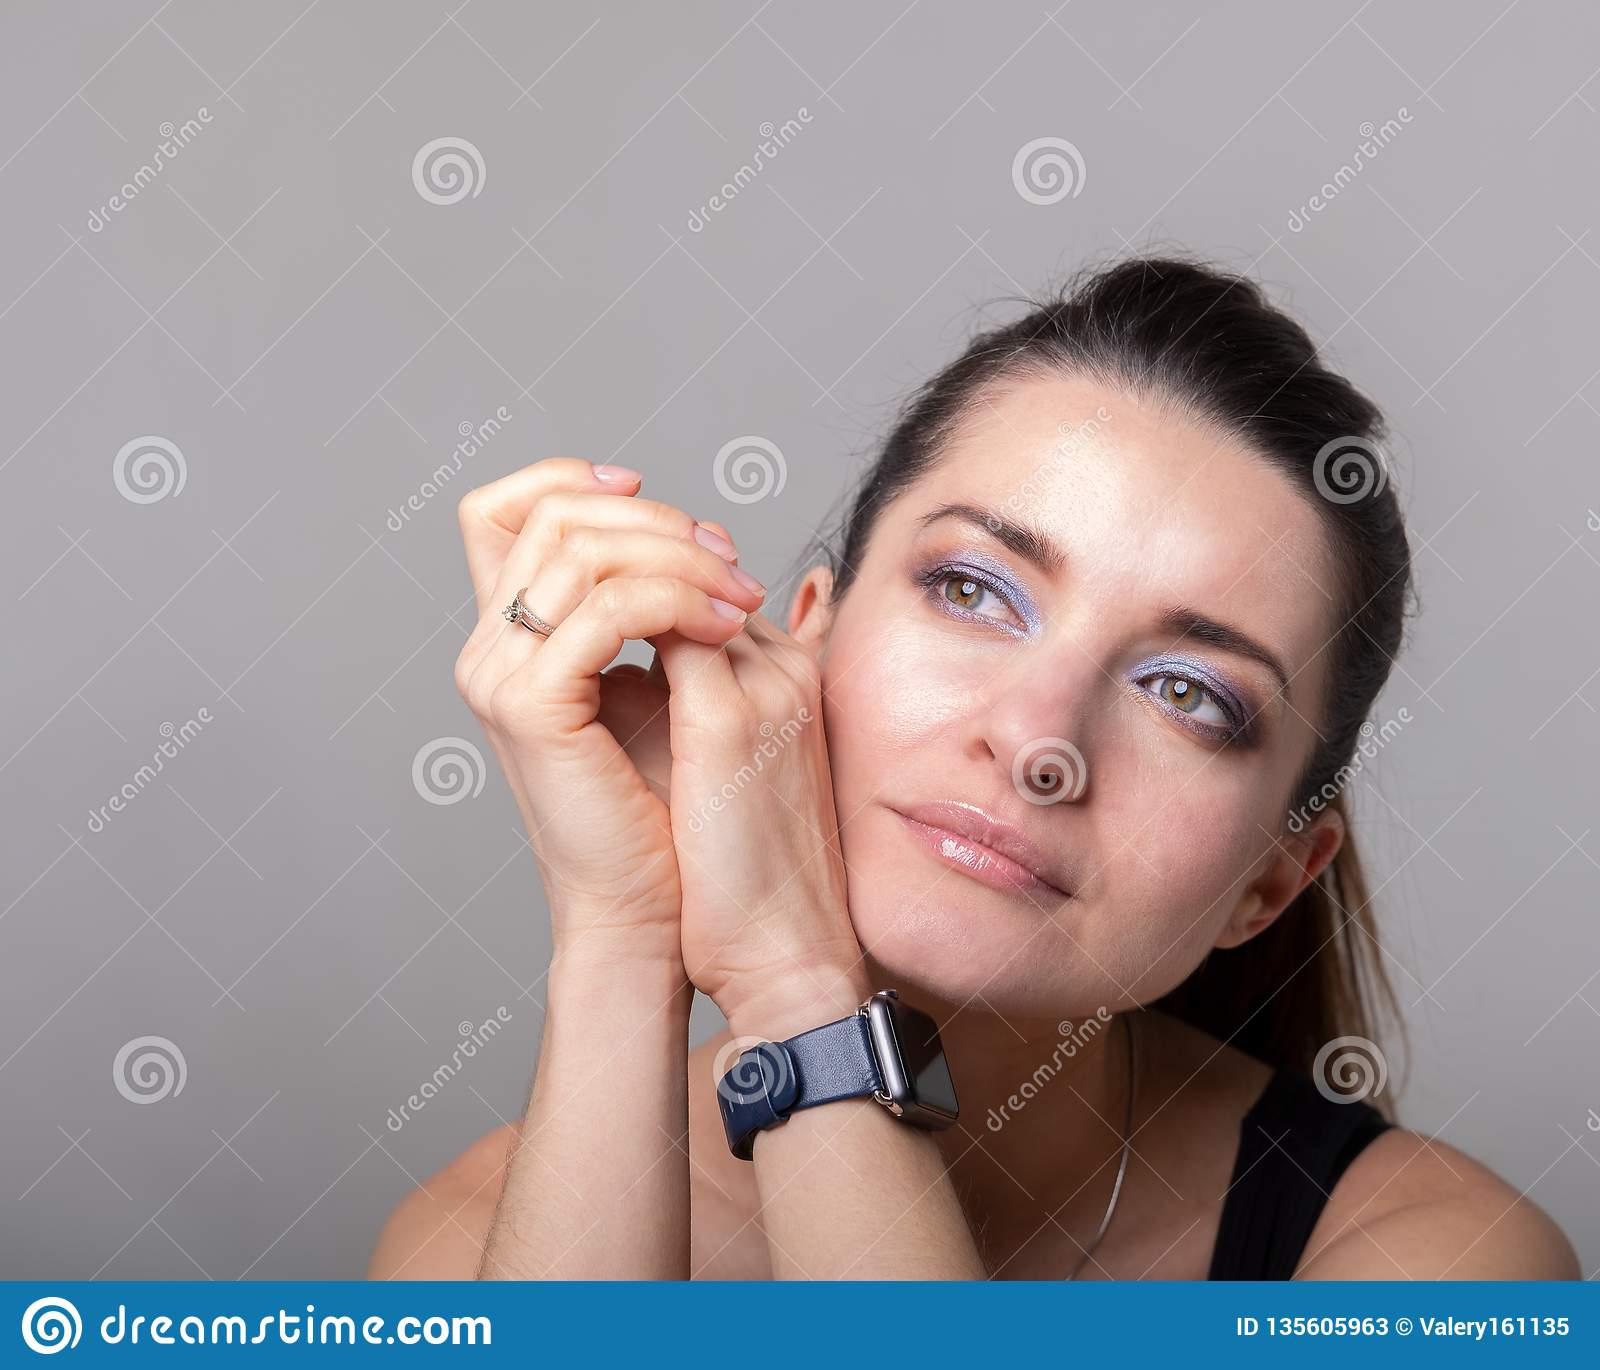 Girl in a black t-shirt holds her hands to her face